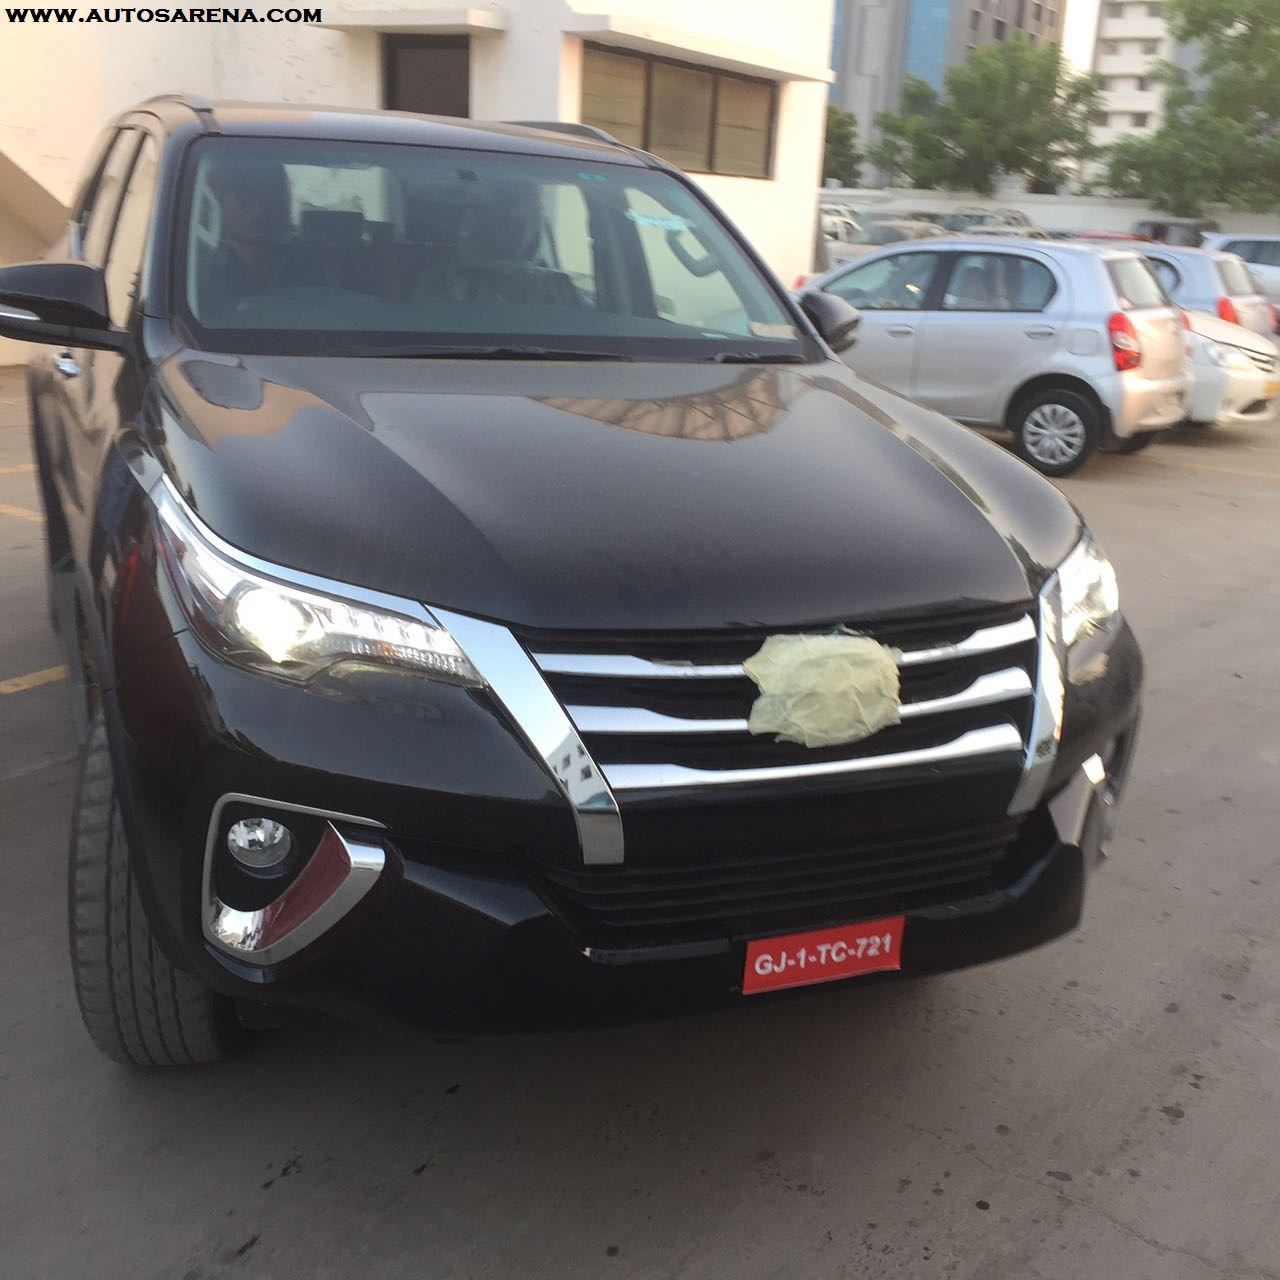 new generation toyota fortuner spotted at a dealership many images of the new suv. Black Bedroom Furniture Sets. Home Design Ideas